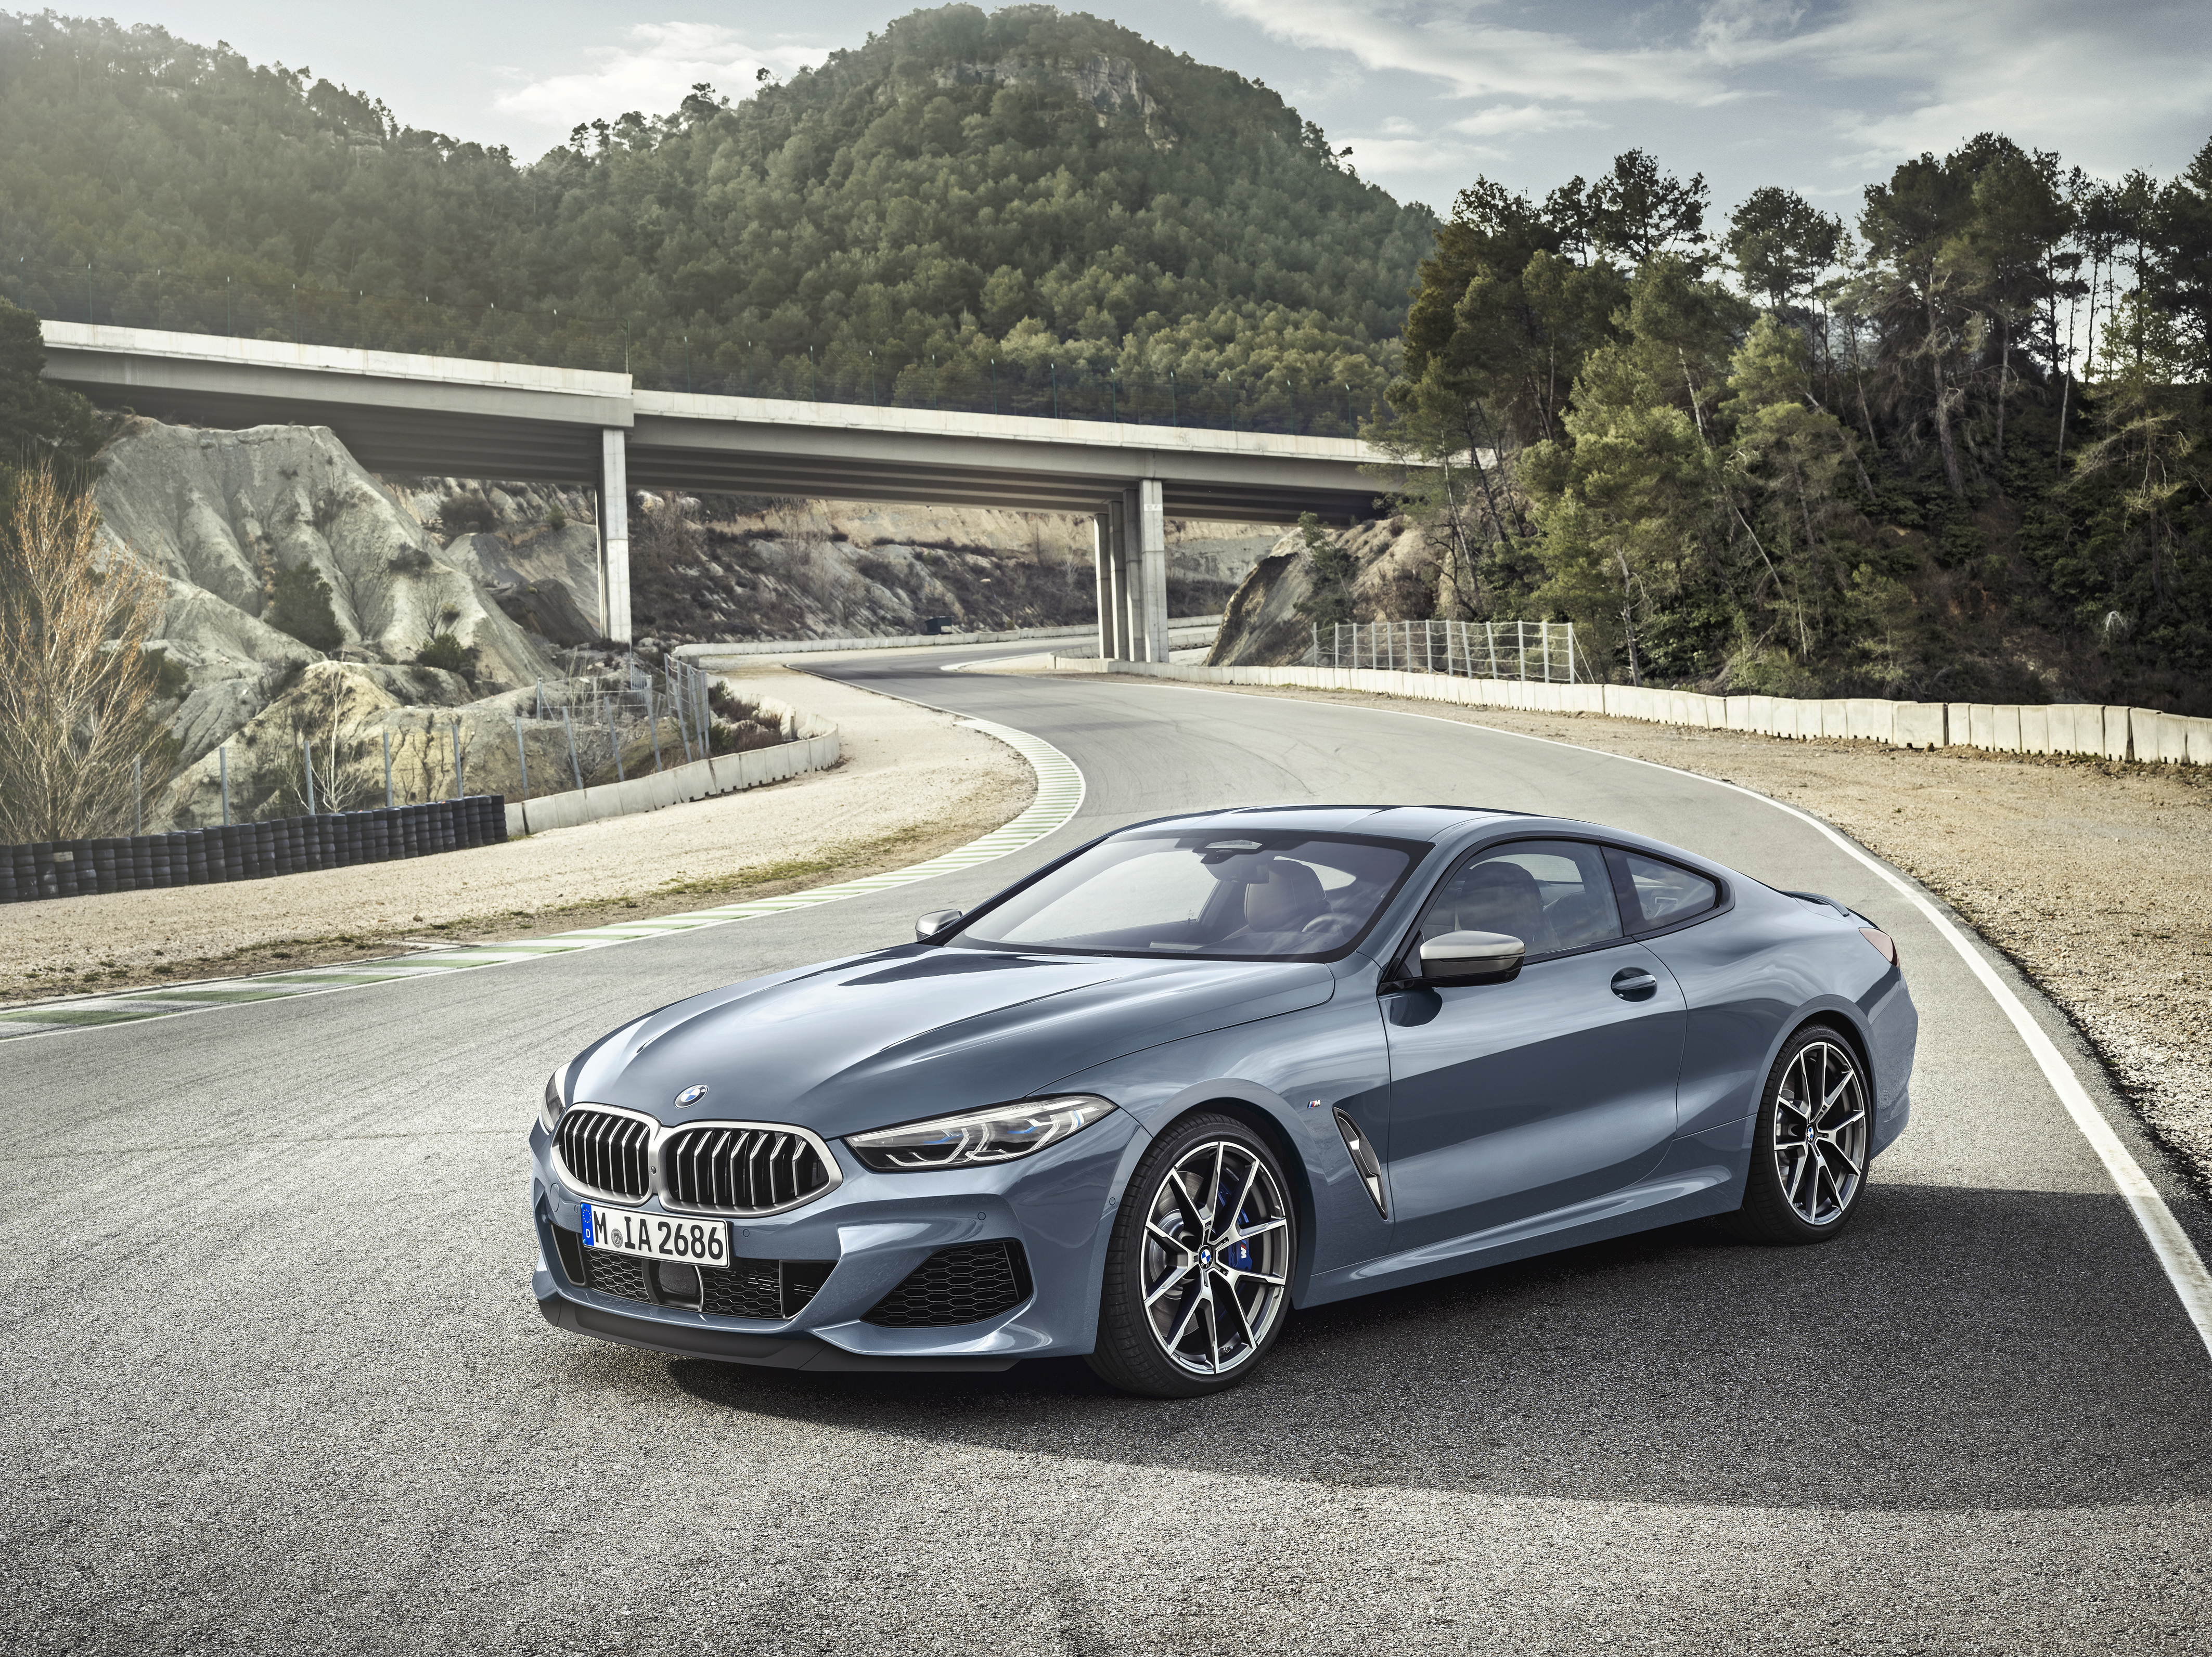 The all-new BMW 8 Series Coupe - Monterey Car Week